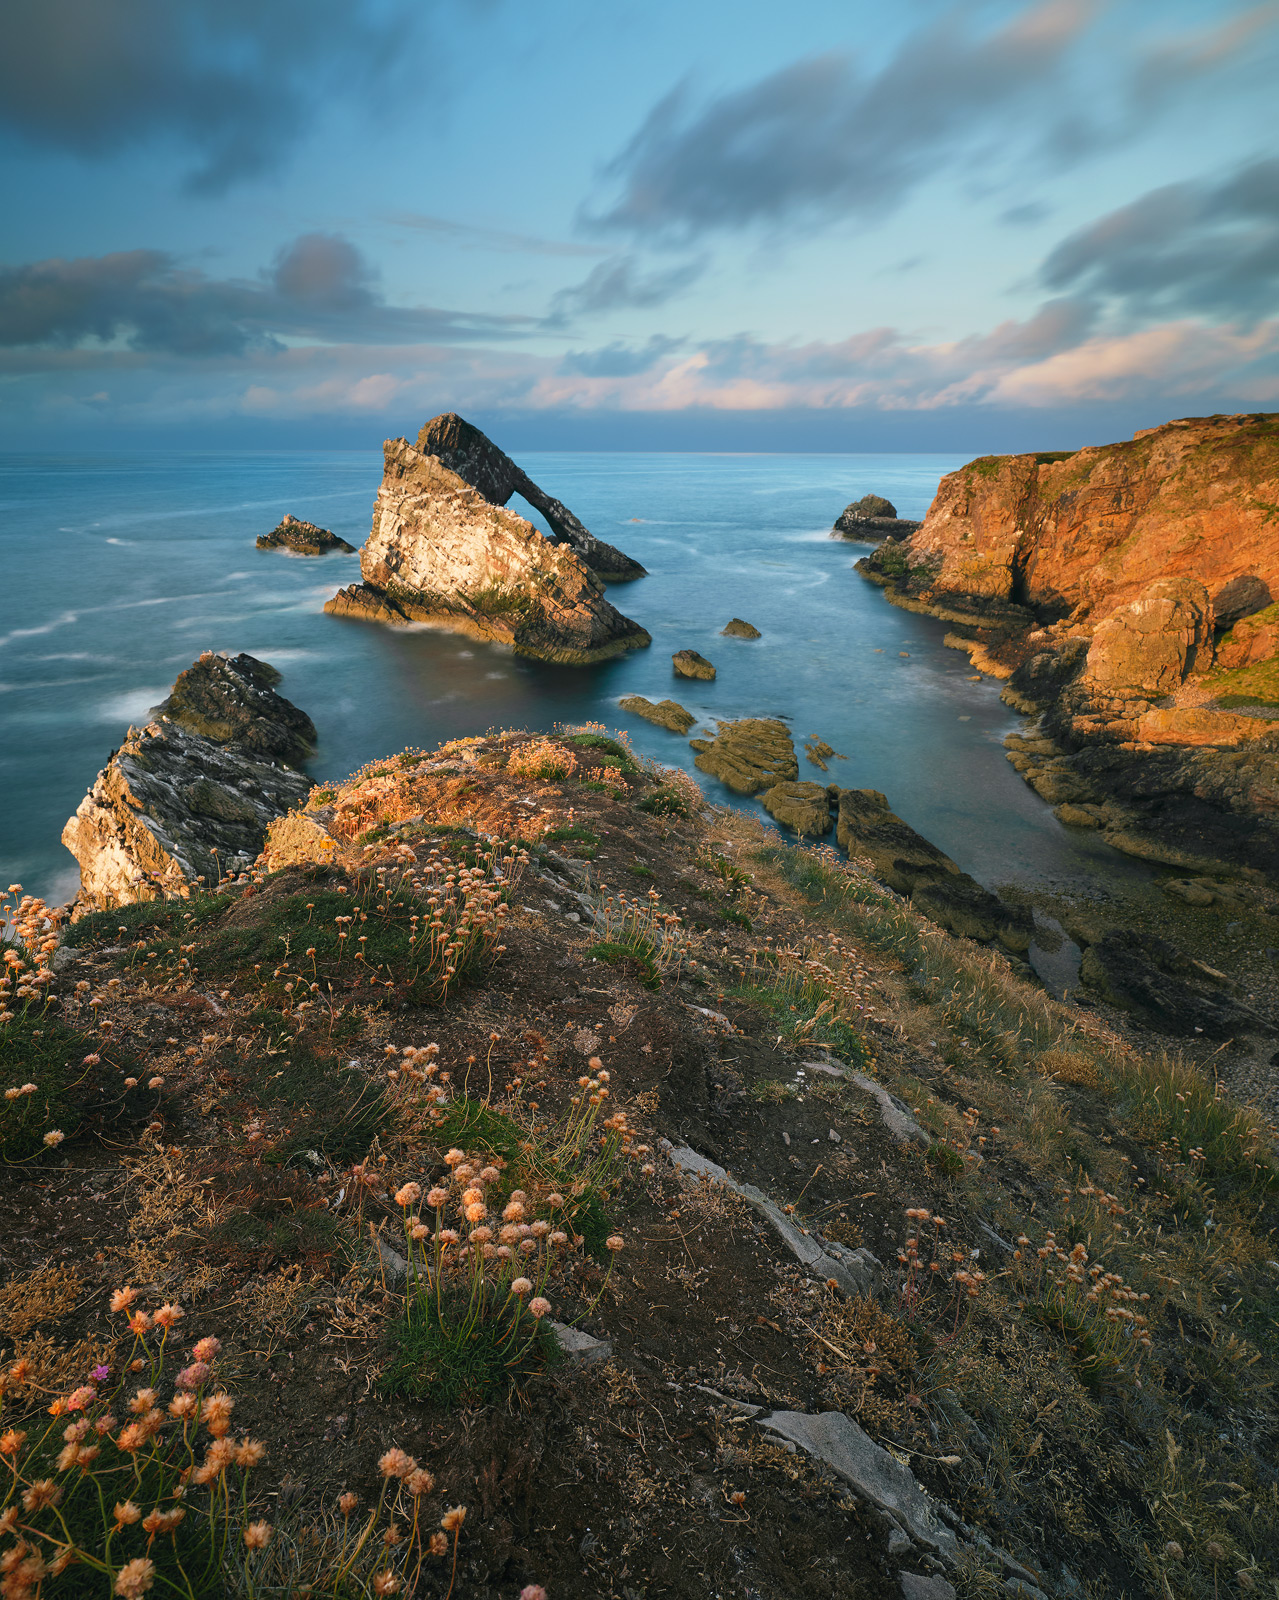 A summer sunset view from the cliff top above Portknockie's famous Bowfiddle Rock on the Moray coast with dead thrift nodding in the foreground.